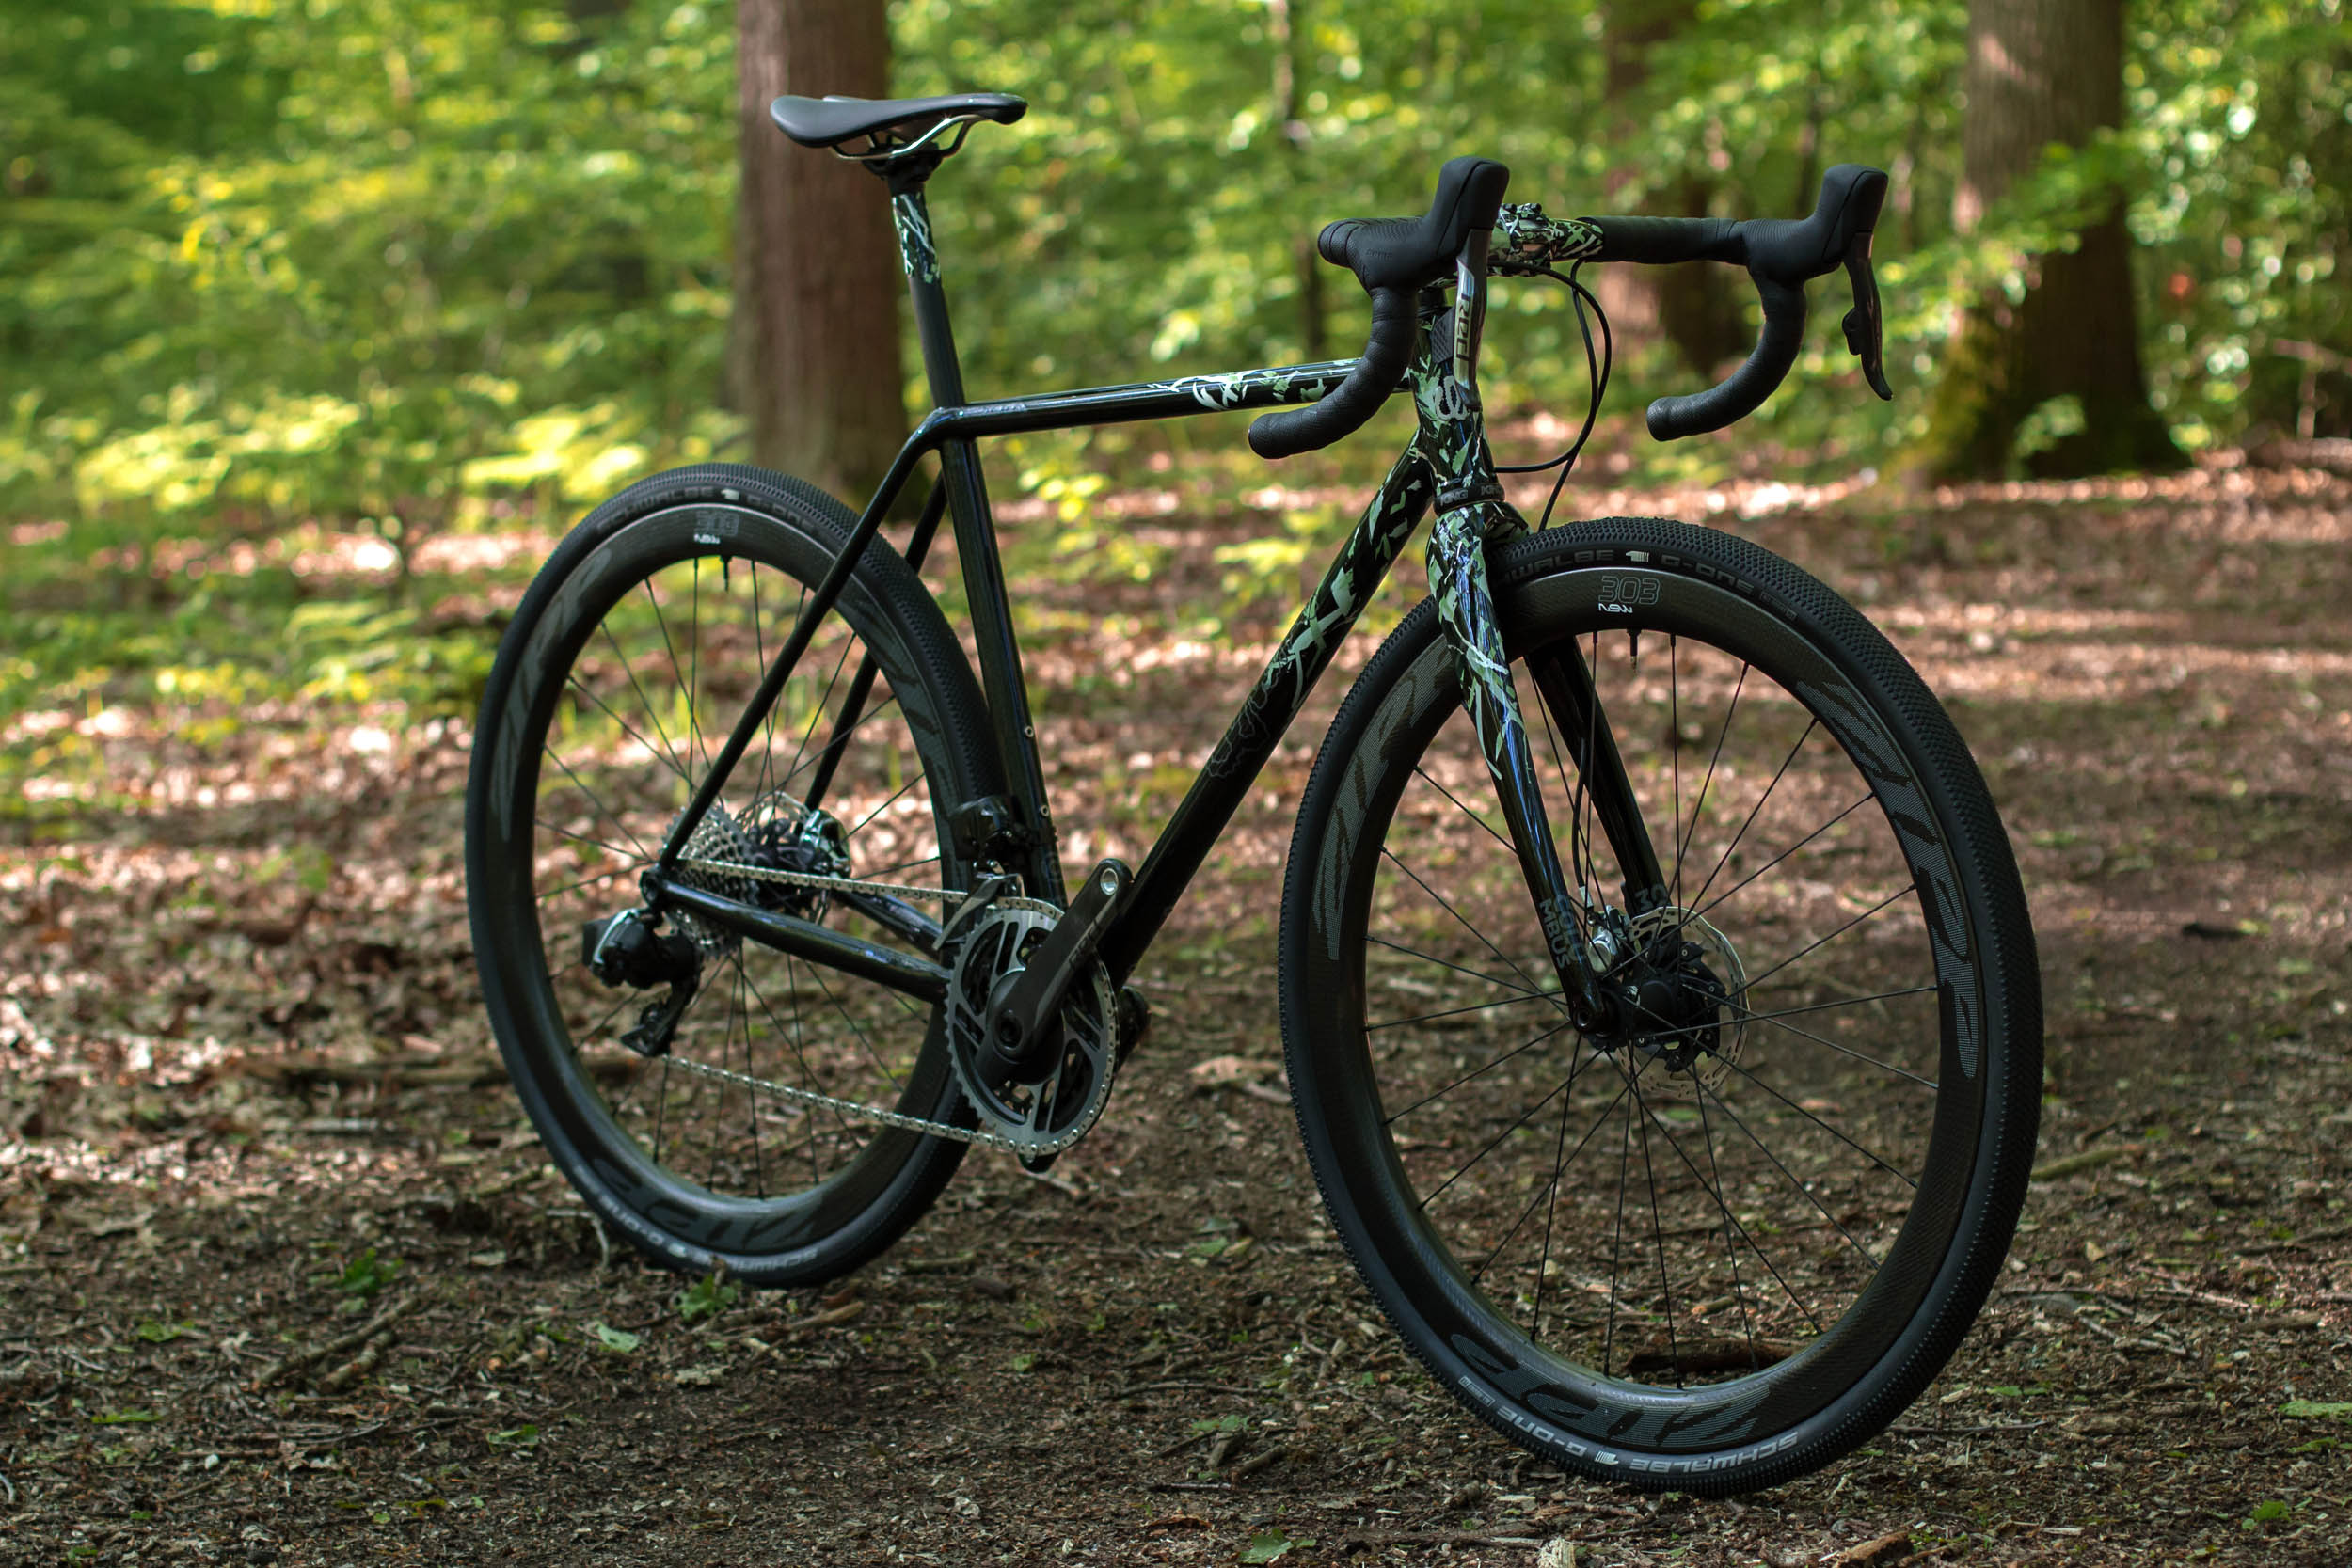 quirk_cycles_mamtor_3DPrinted_build_03.jpg